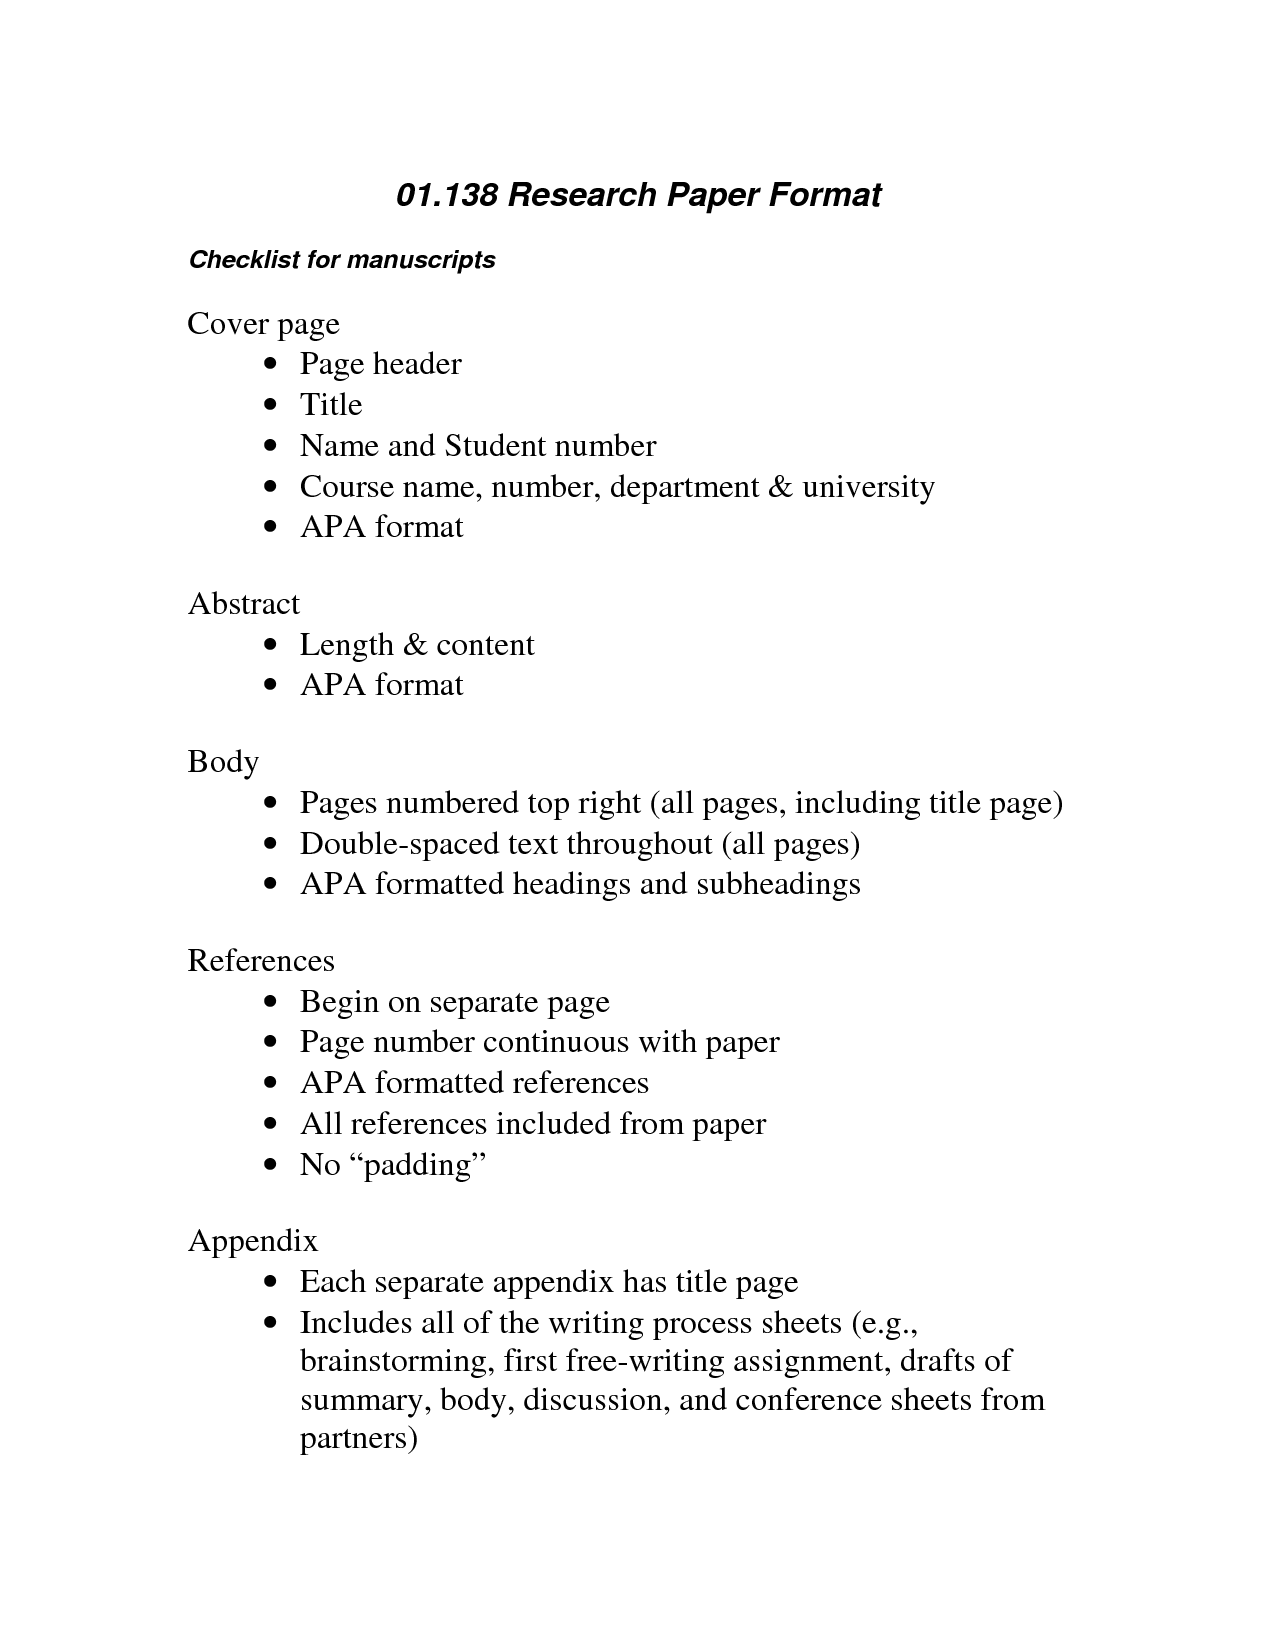 002 Apa Research Paper Format Outstanding Purdue Owl Example 2015 Full